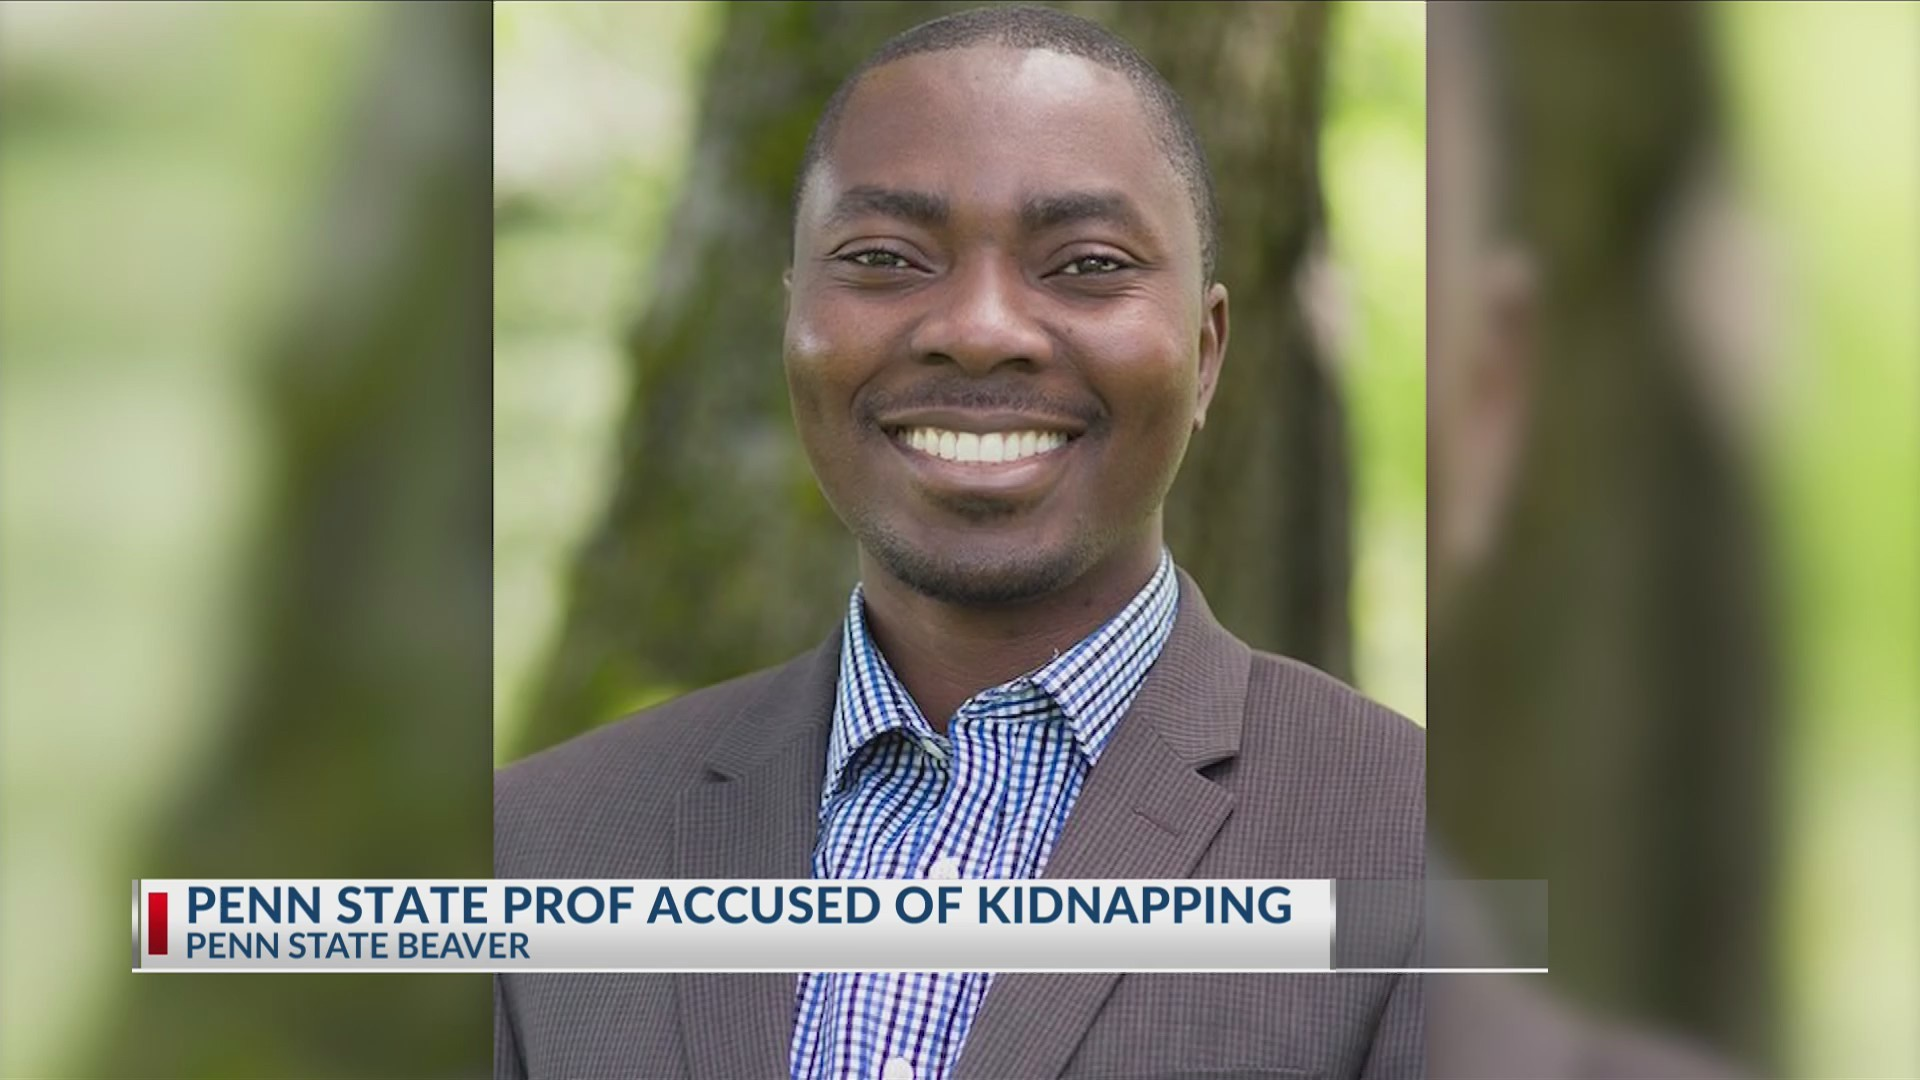 Penn State Prof. Accused of Kidnapping